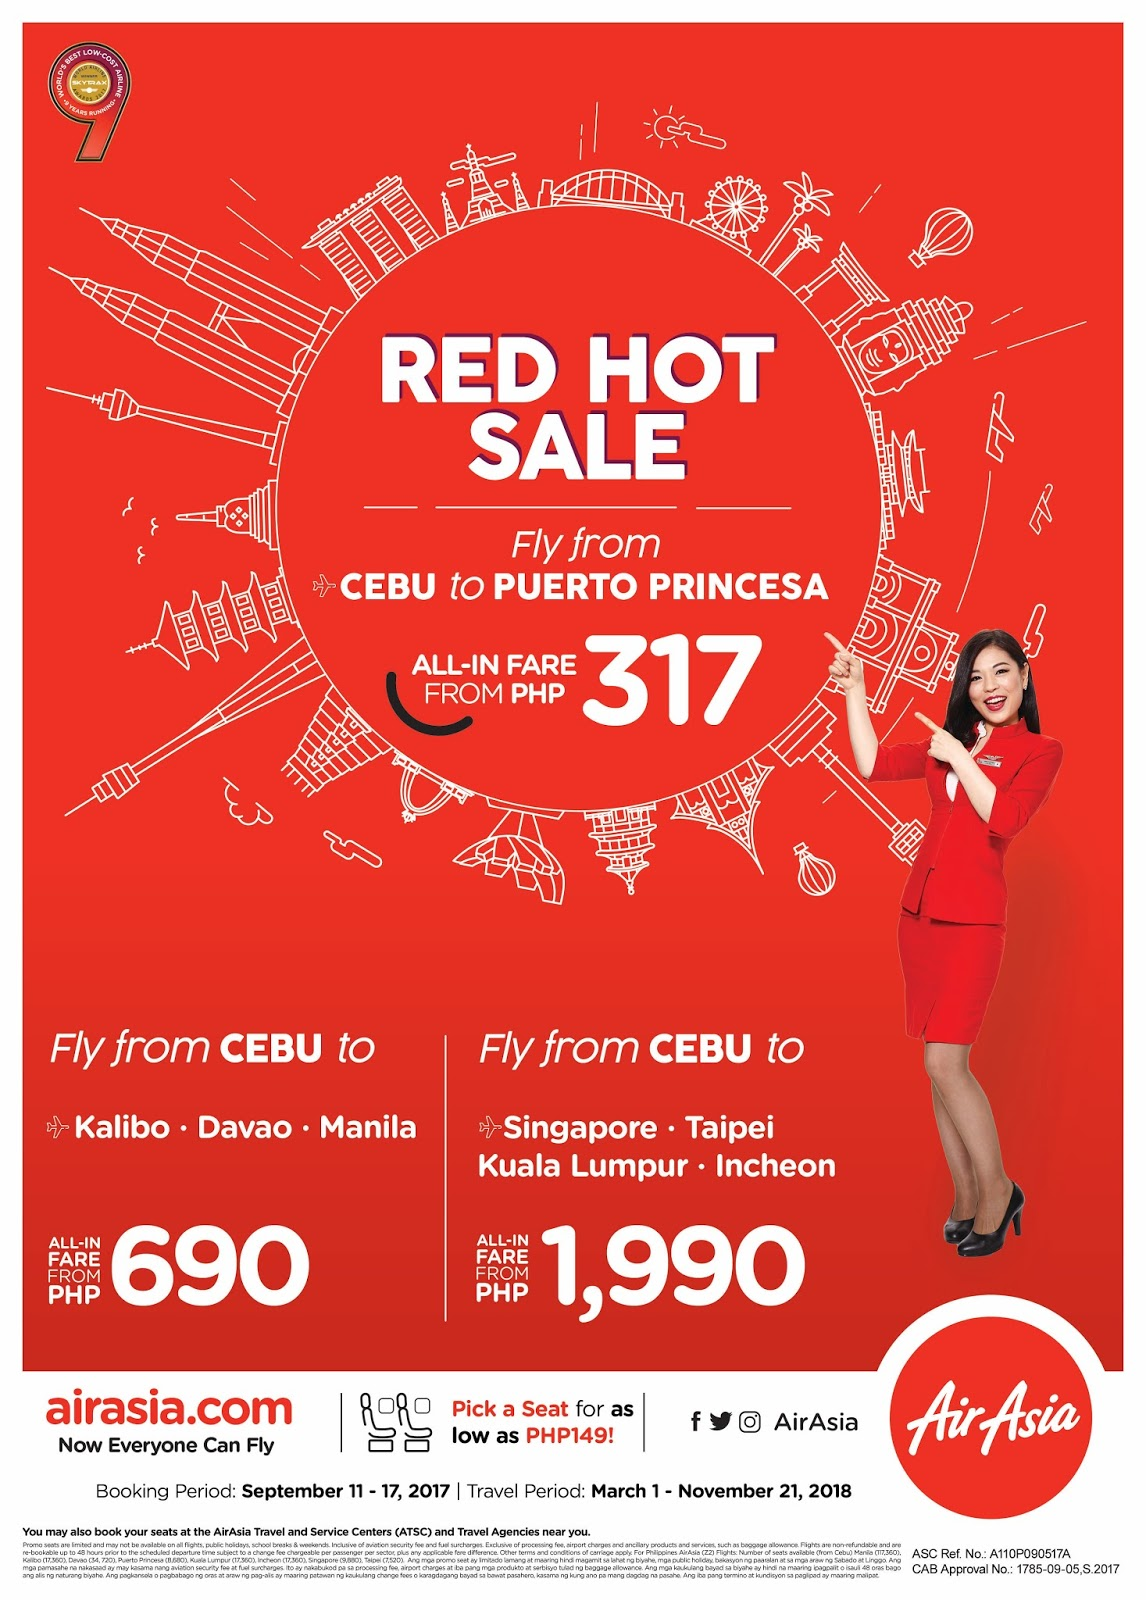 AirAsia's Red Hot Sale is back, fly from Cebu and Davao from as low as P217!